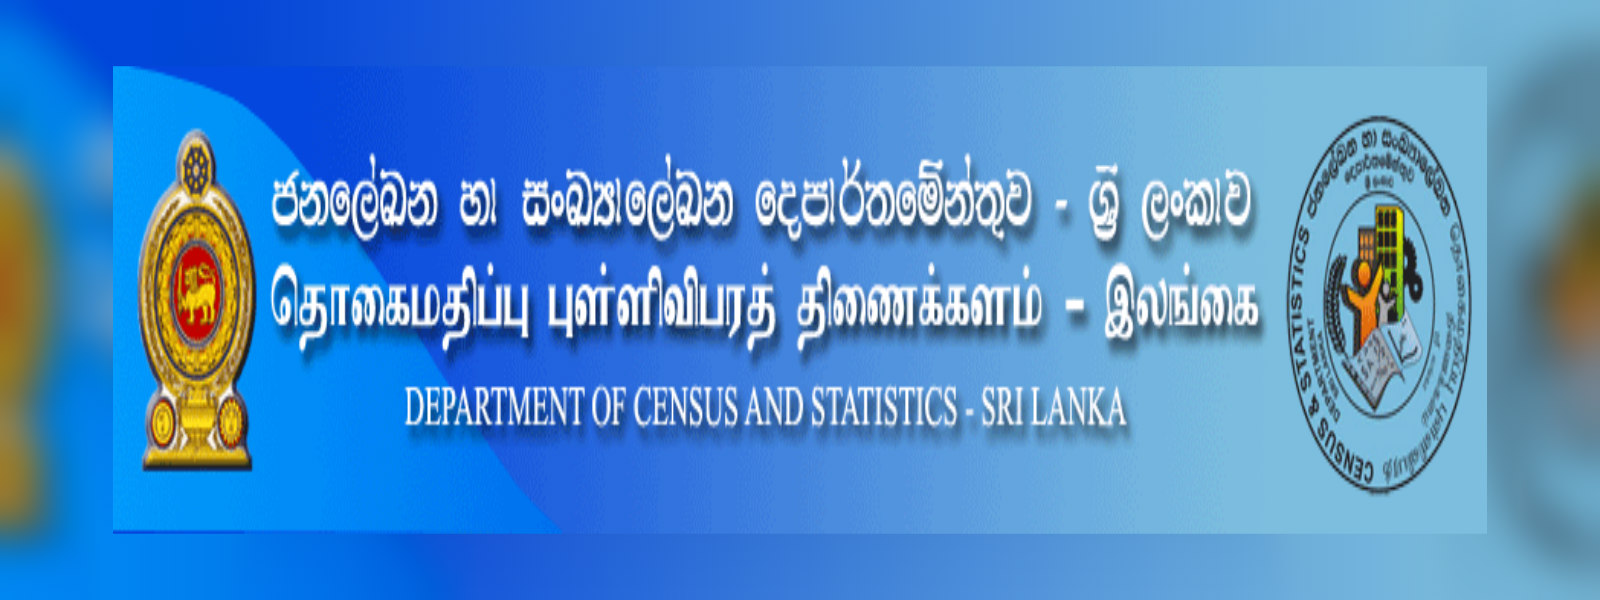 15th census due to begin in 2021